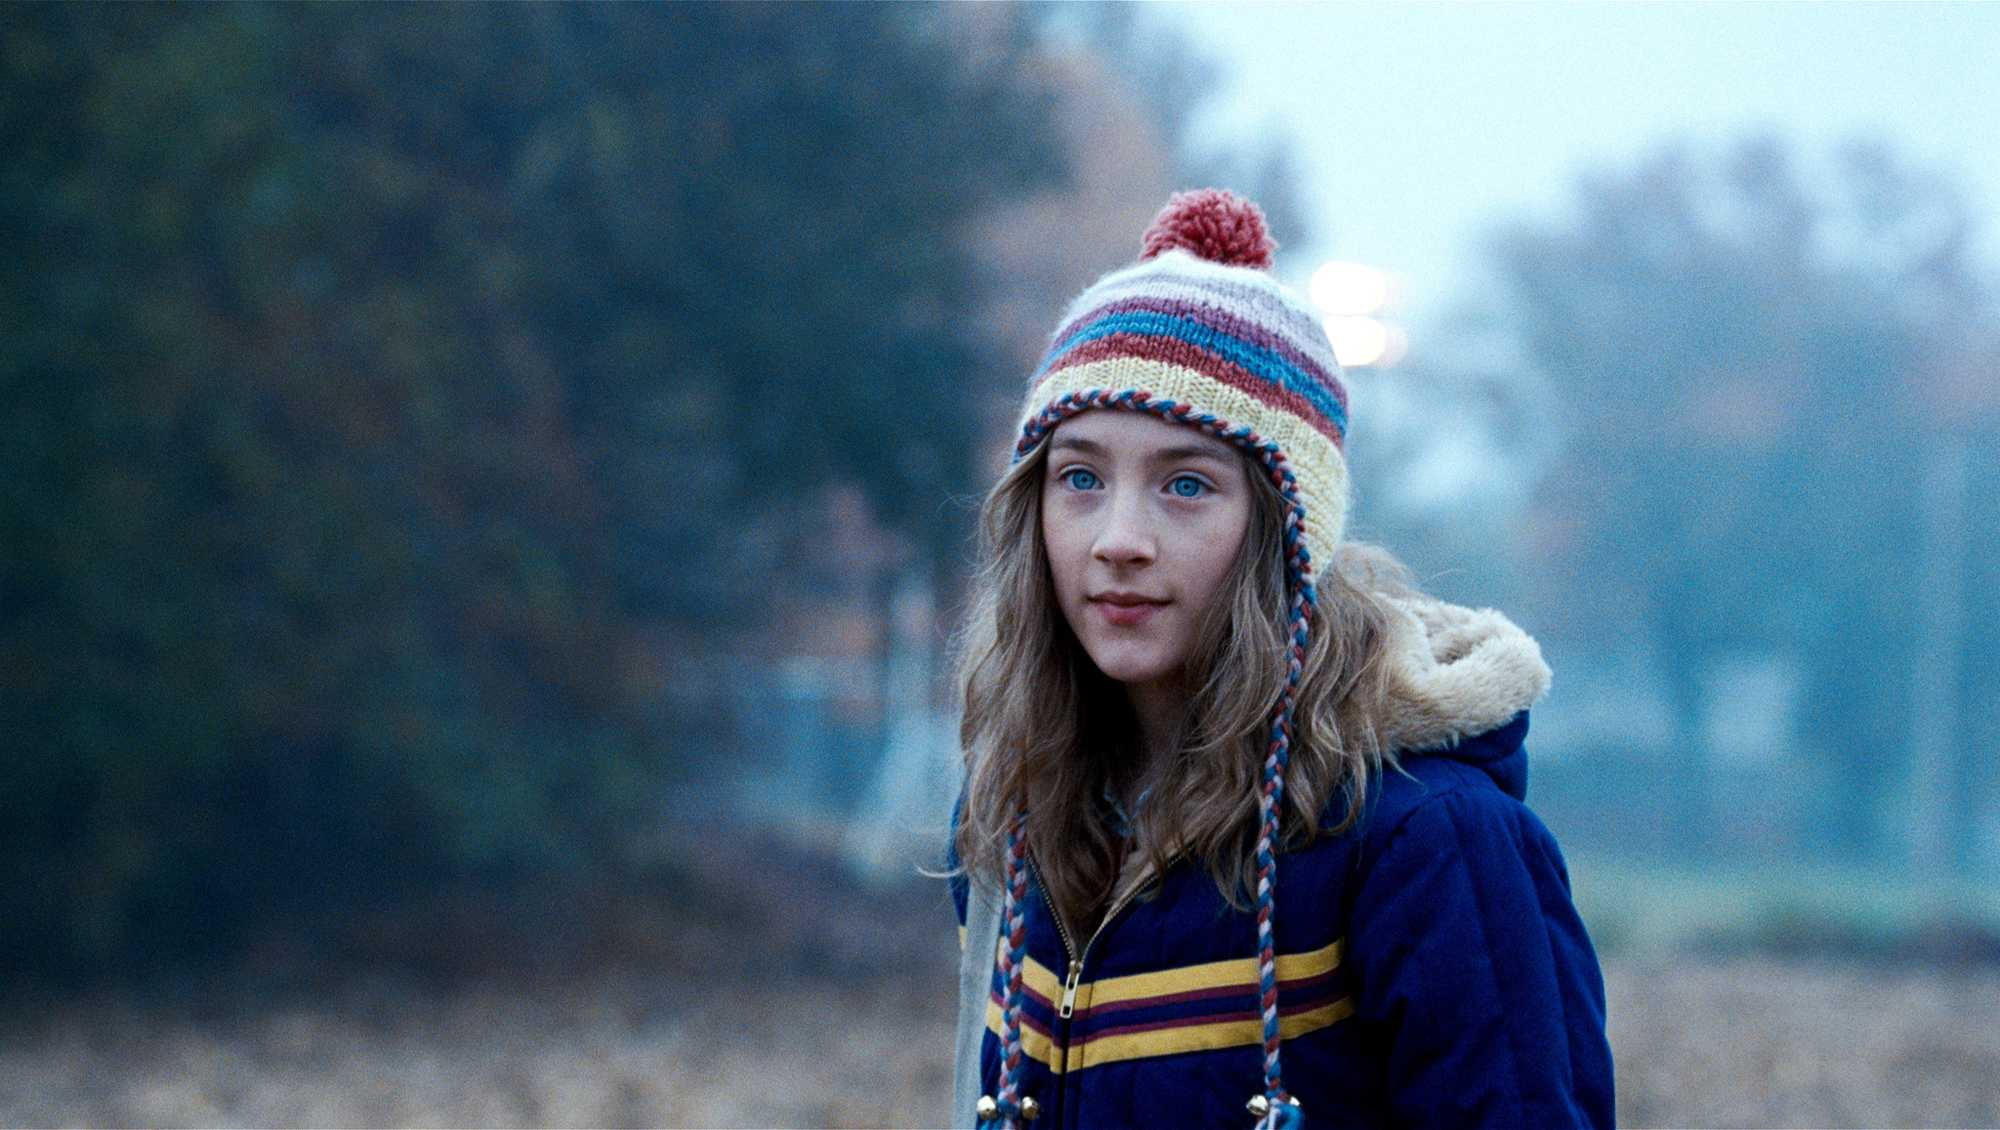 Saoirse Ronan as Susie Salmon in The Lovely Bones (2009)